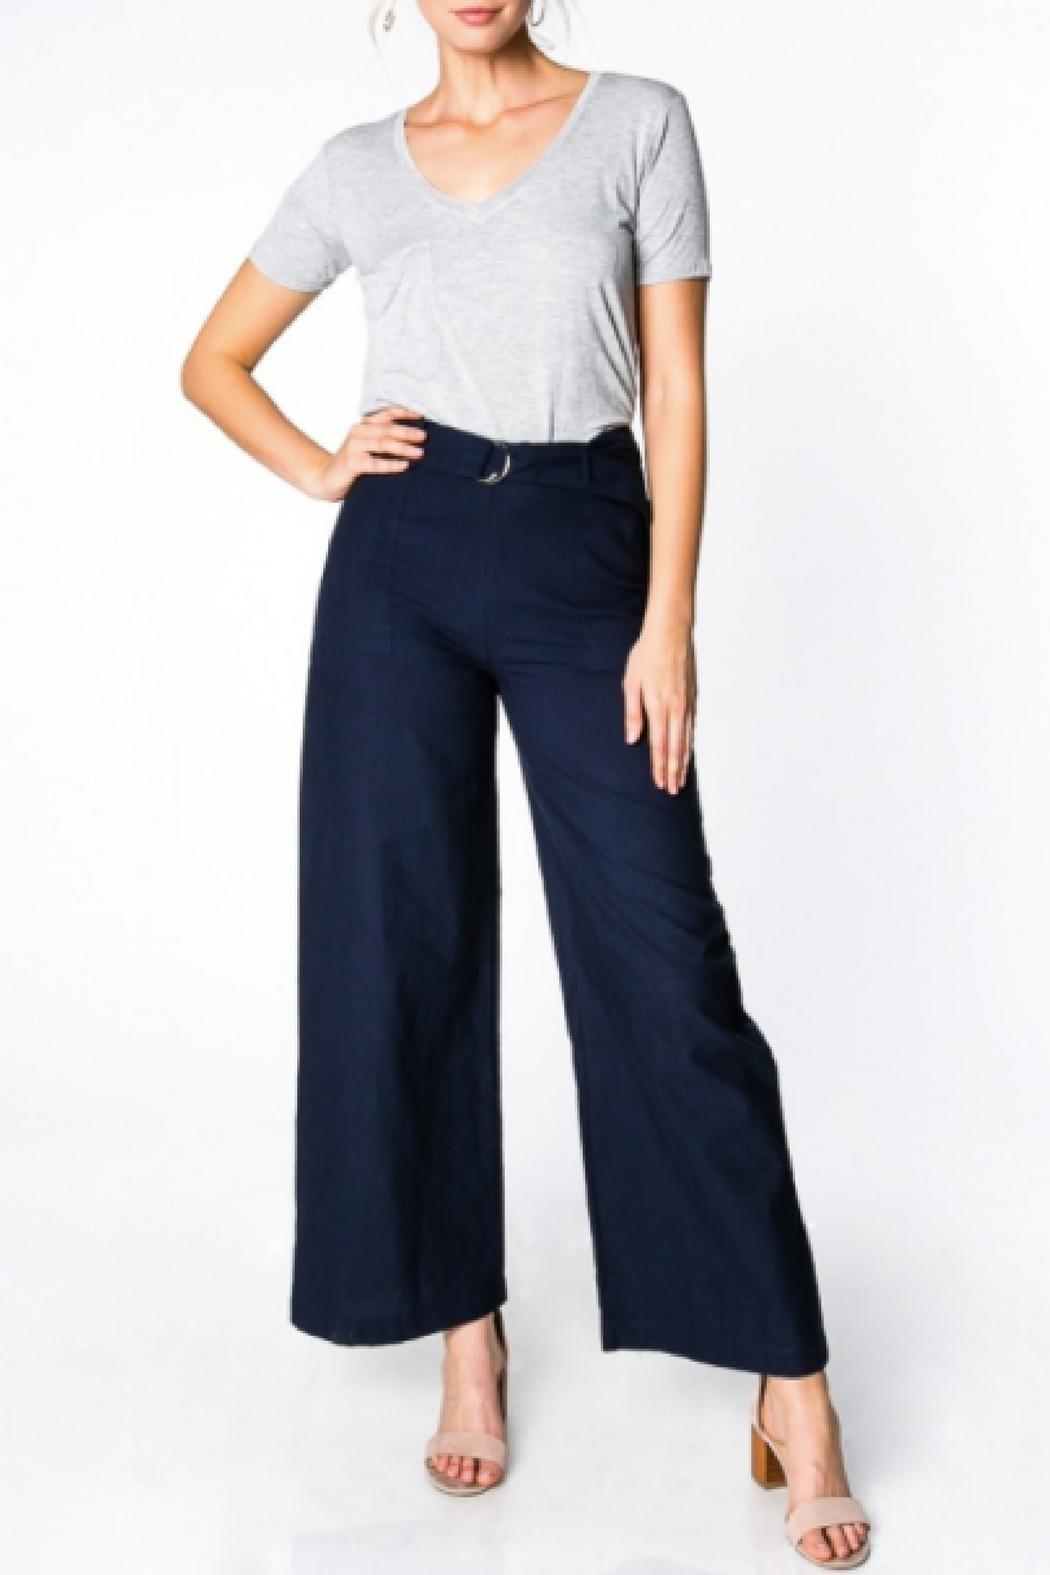 Everly Wide-Leg Belted Pants - Main Image